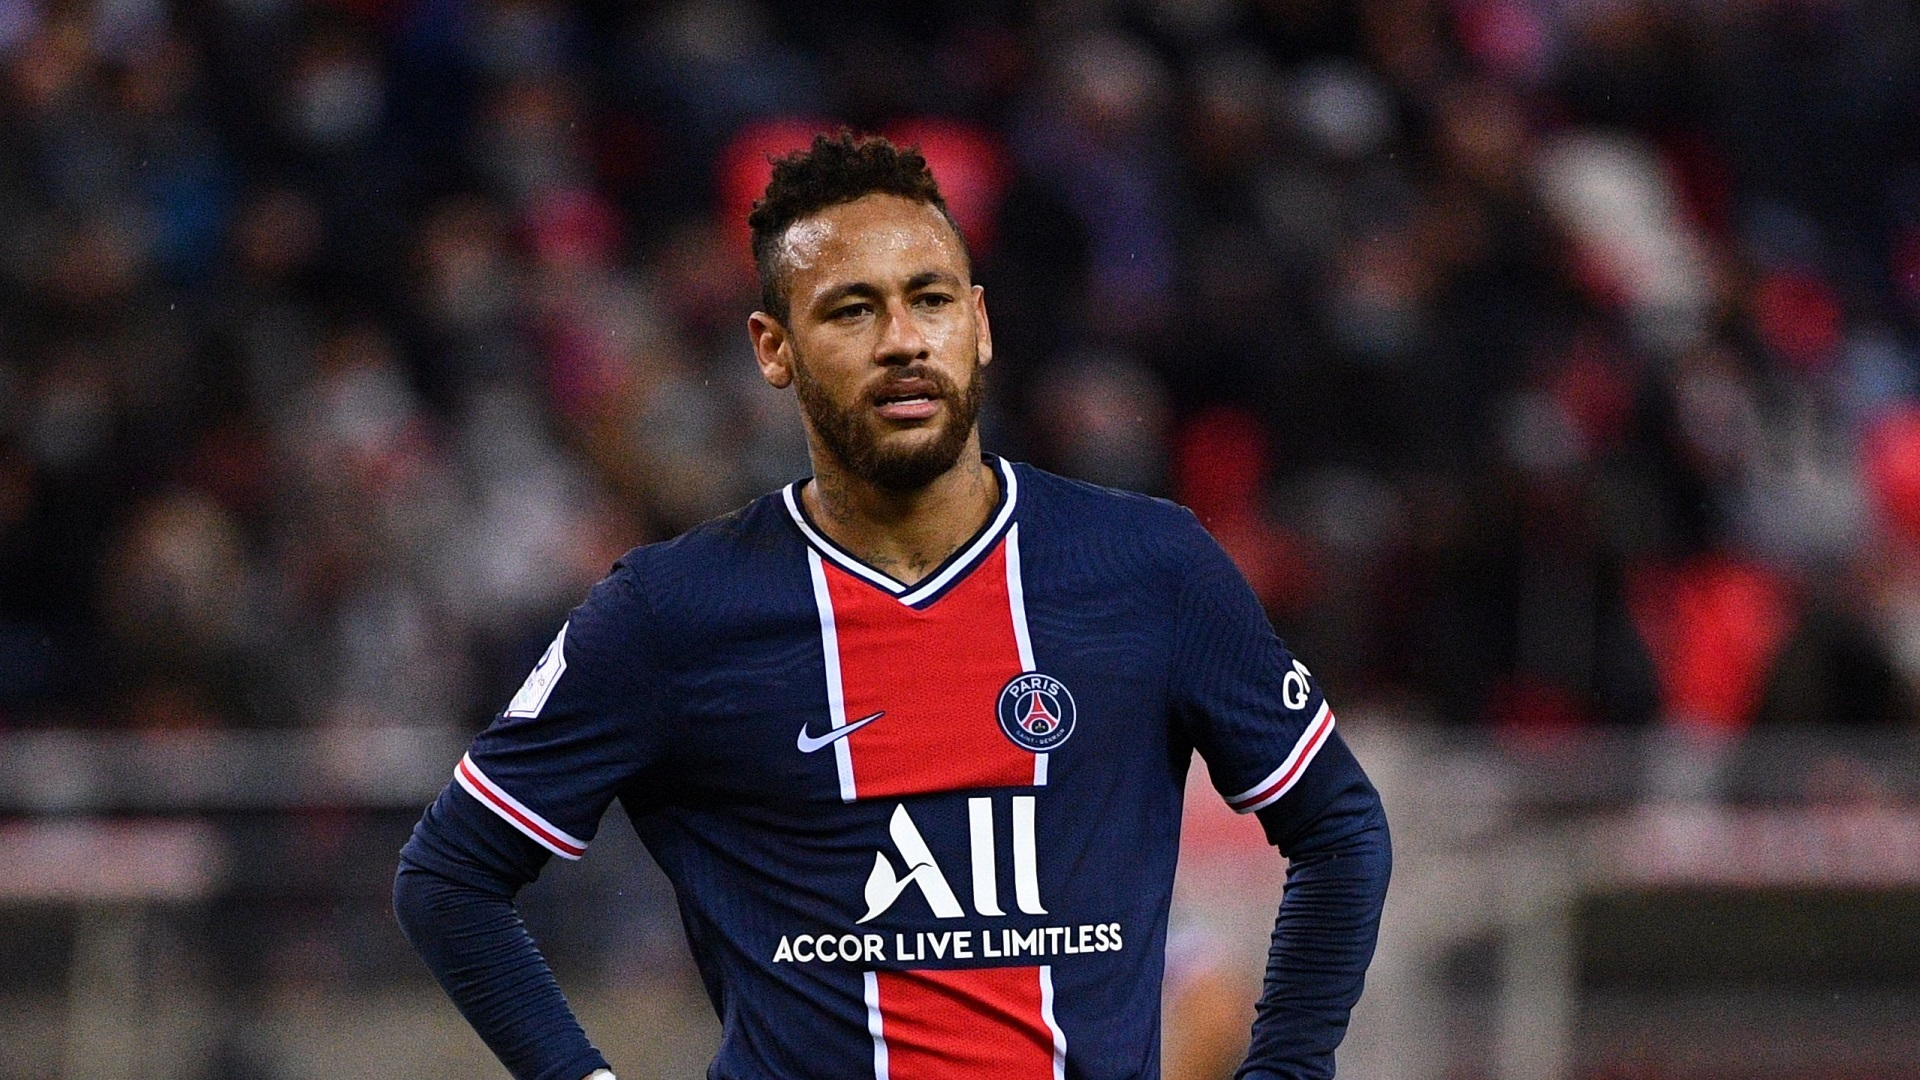 Neymar Injury Concern For Psg As Tuchel Says He Needs To Speak With Doctors Following Reims Win Goal Com